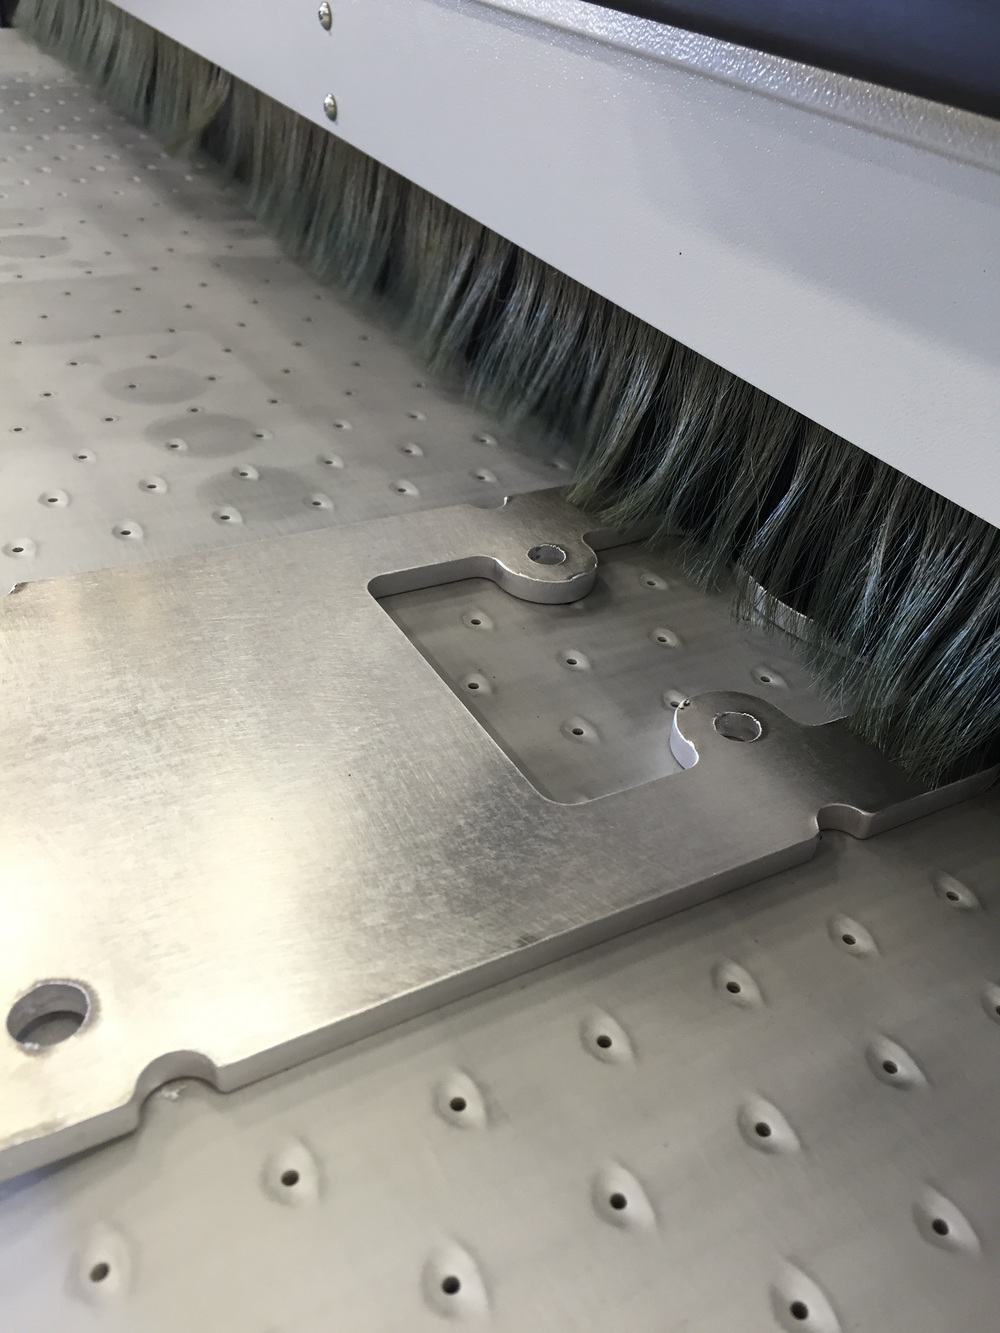 The finished part exiting the machine is completely free of burrs and sharp edges. You'll also notice the large surface of the part has received a slight brushed finish which helps eliminate small scratches on the surface of the part.